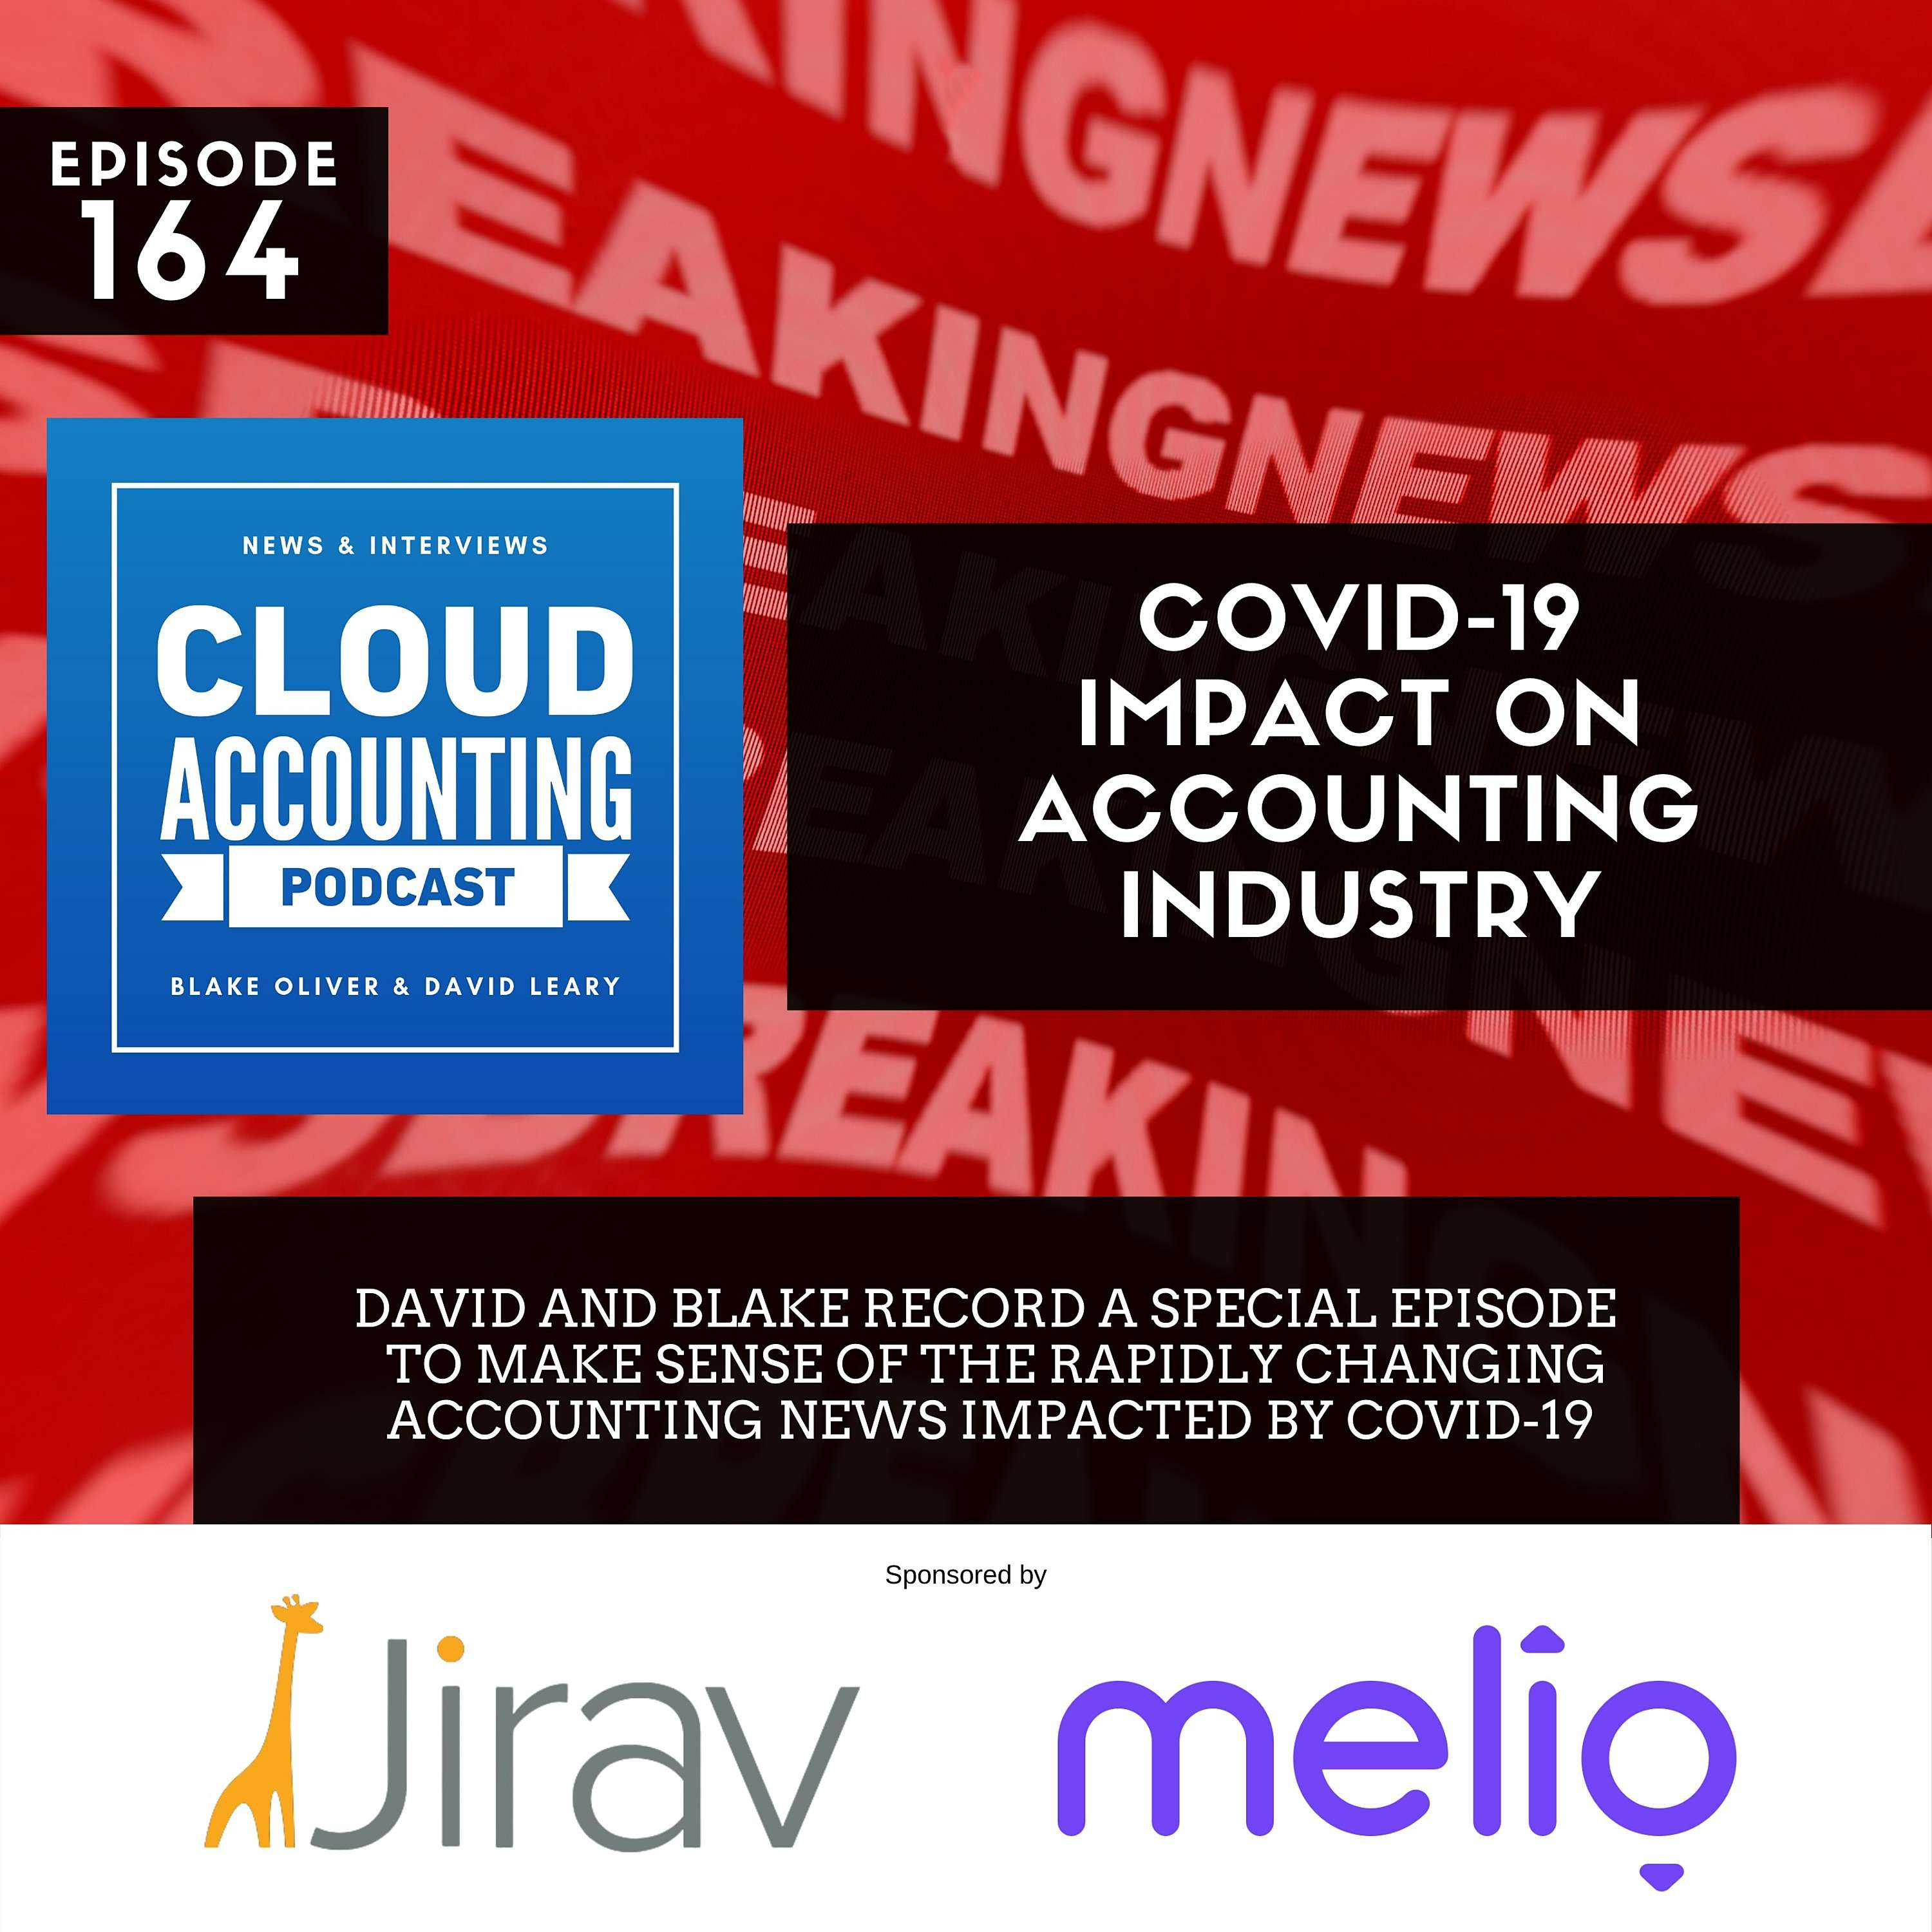 COVID-19 Impact on the Accounting Industry